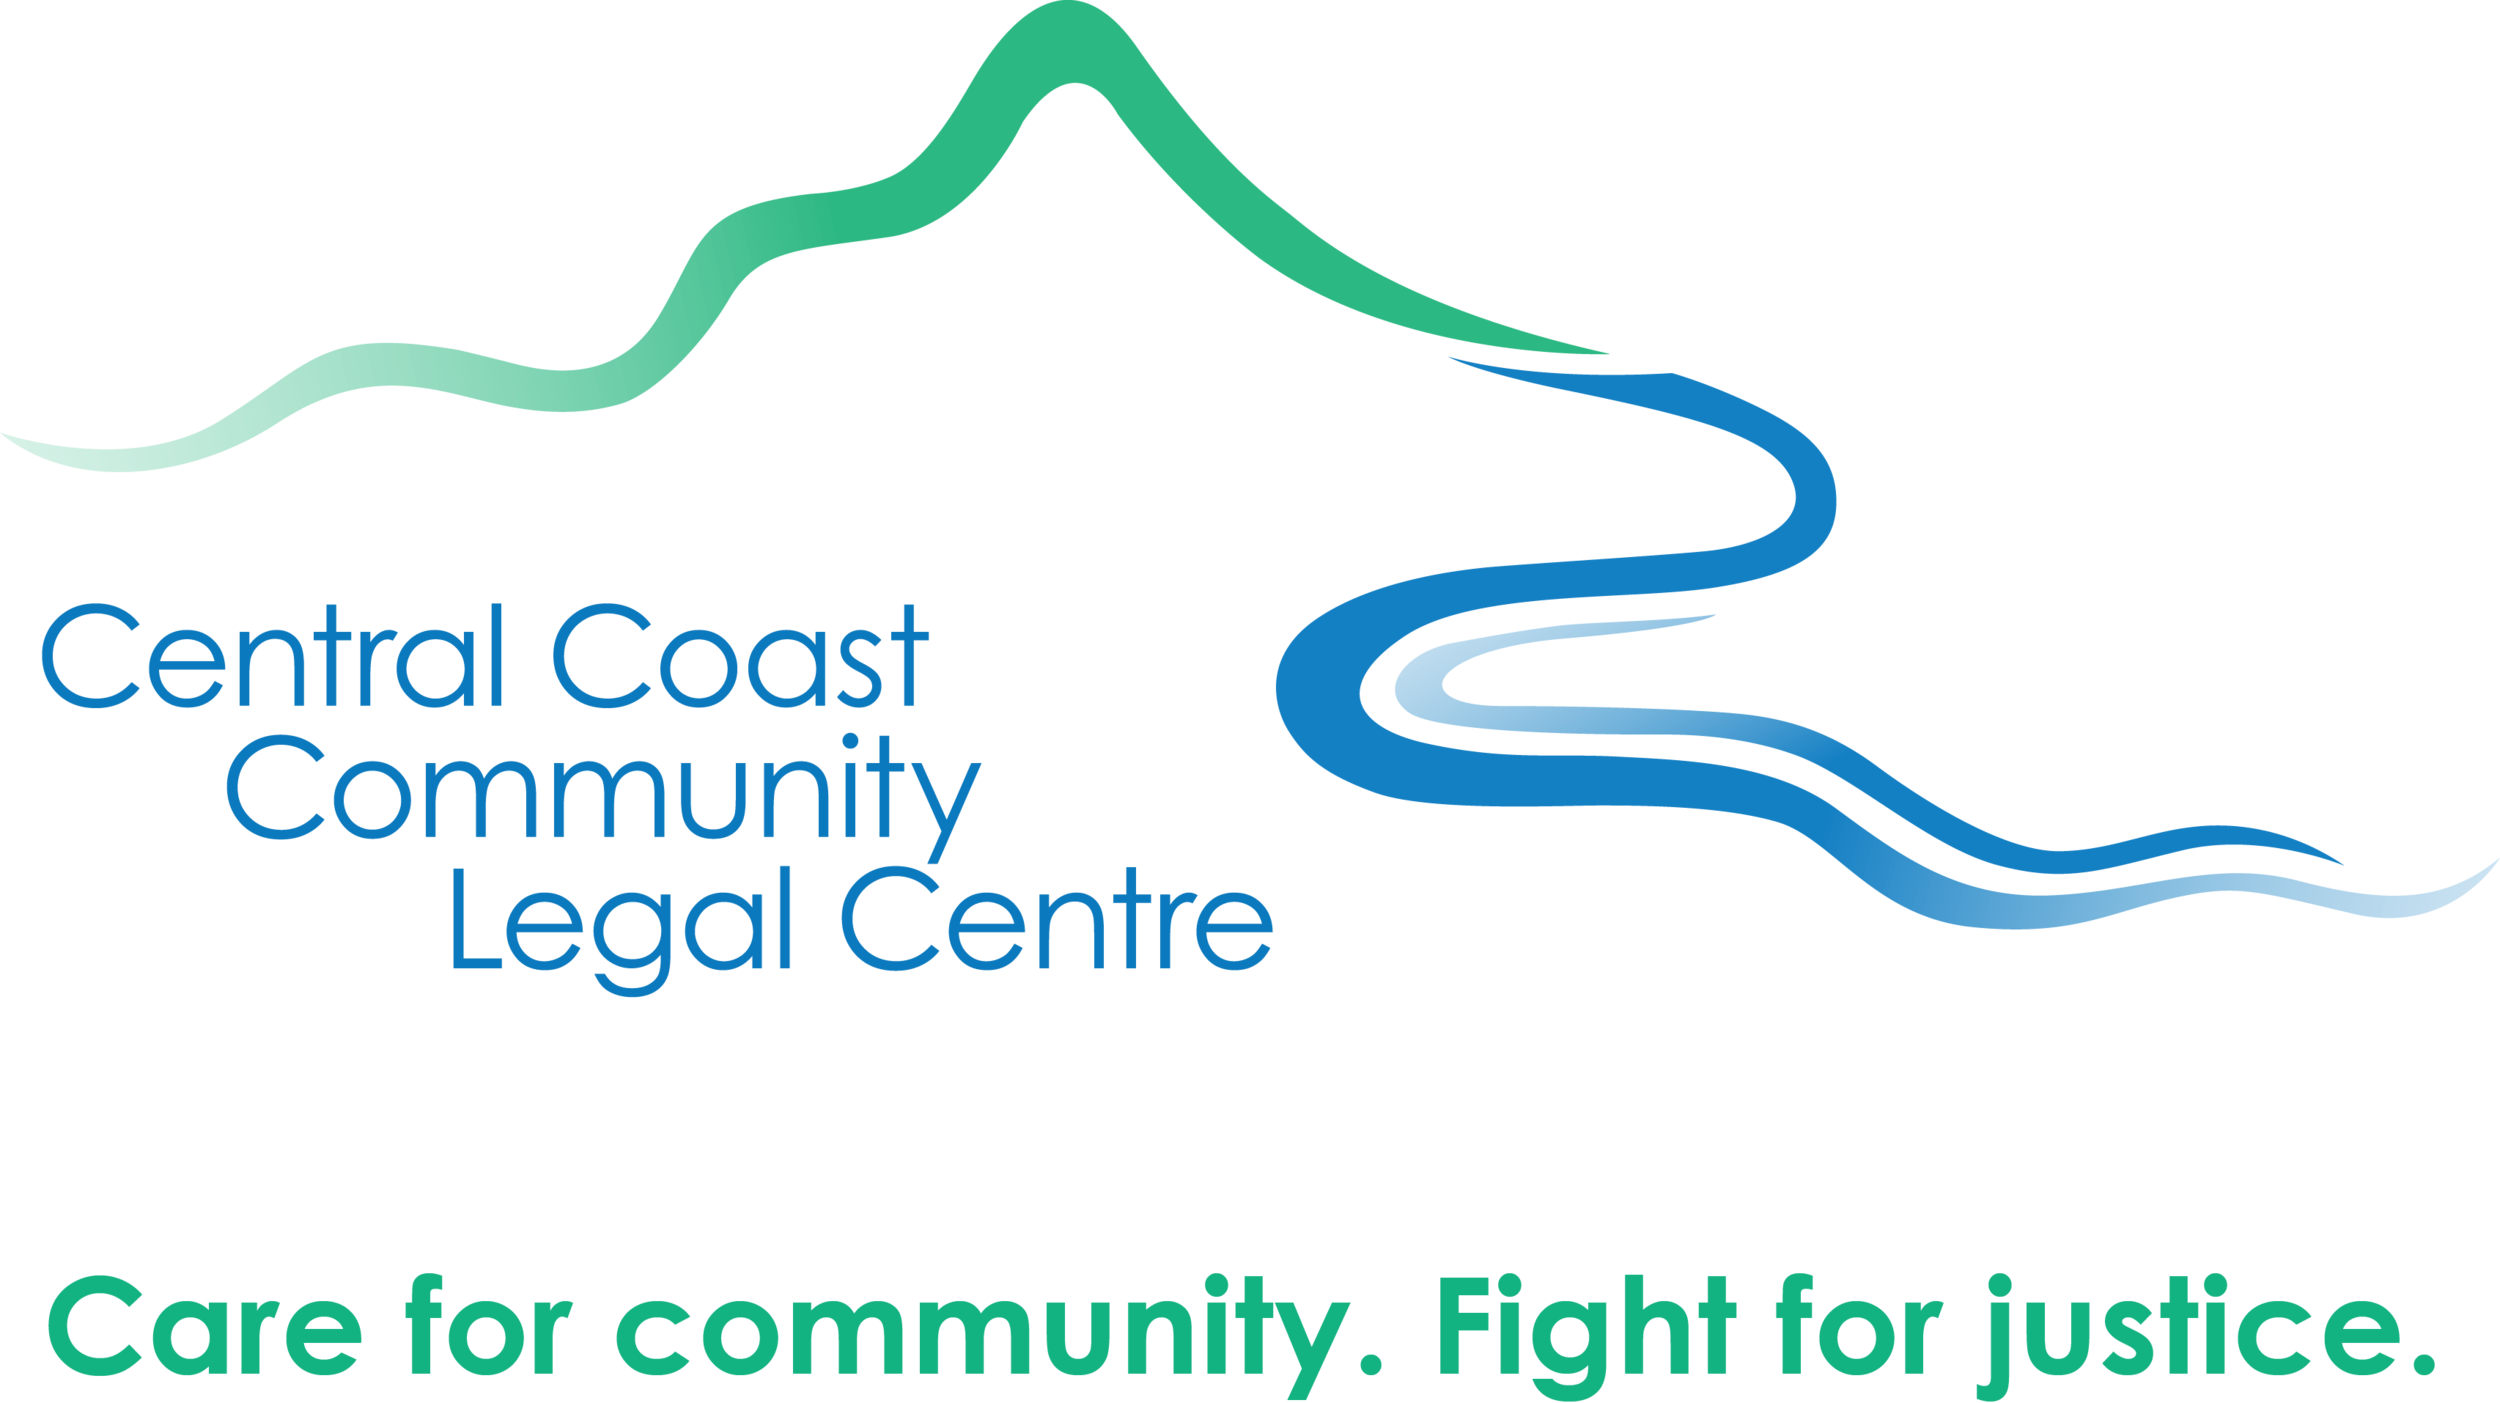 cclc_logo_with_tagline.png